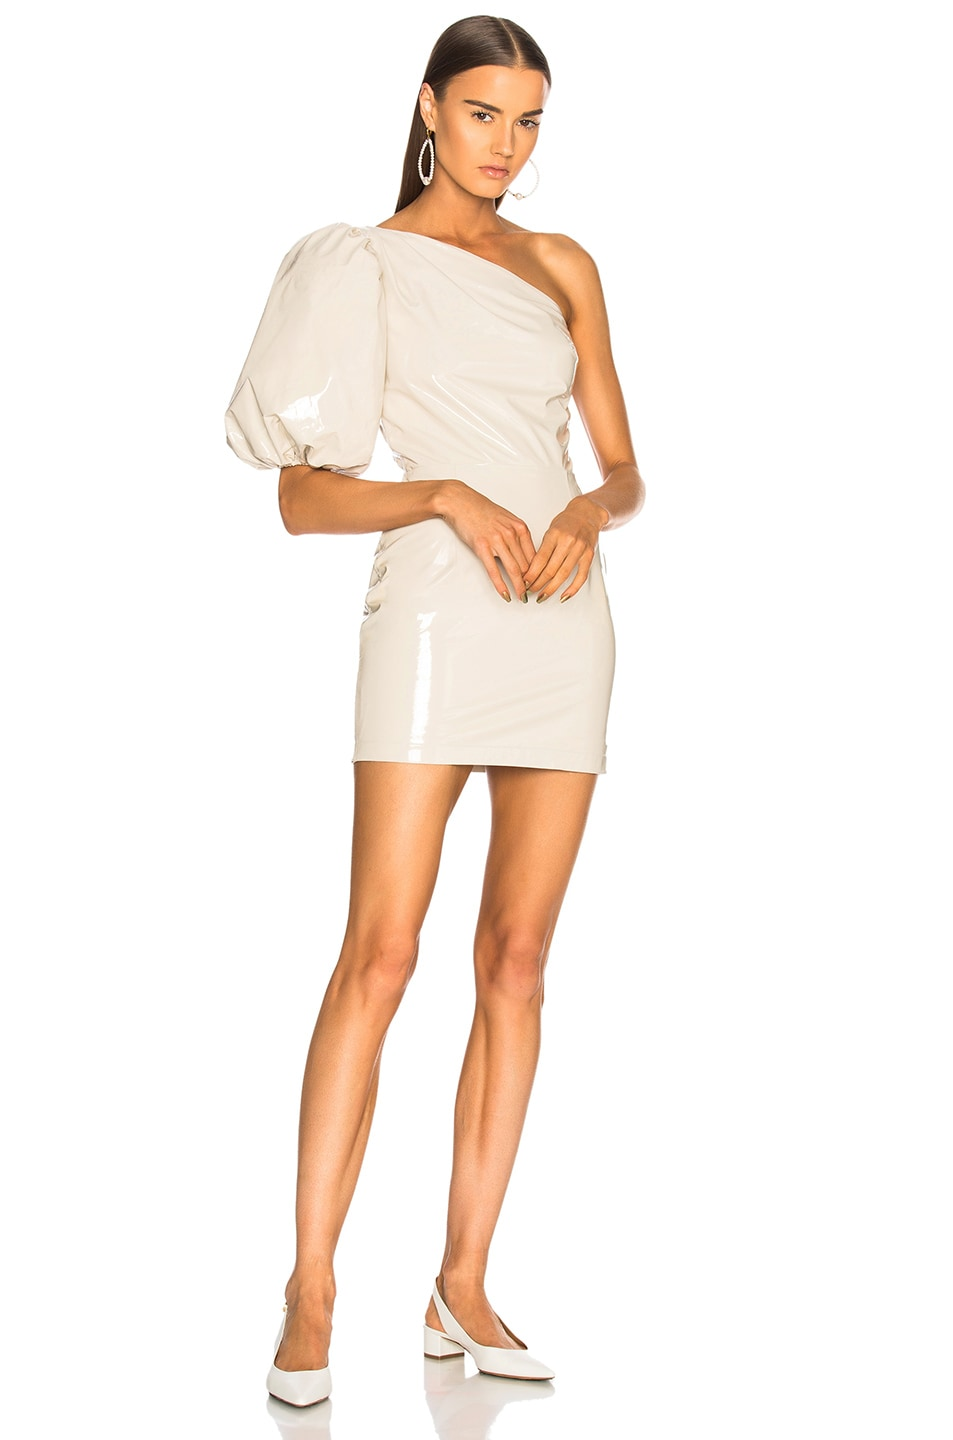 ZEYNEP ARCAY ONE SHOULDER PATENT LEATHER DRESS IN CREAM